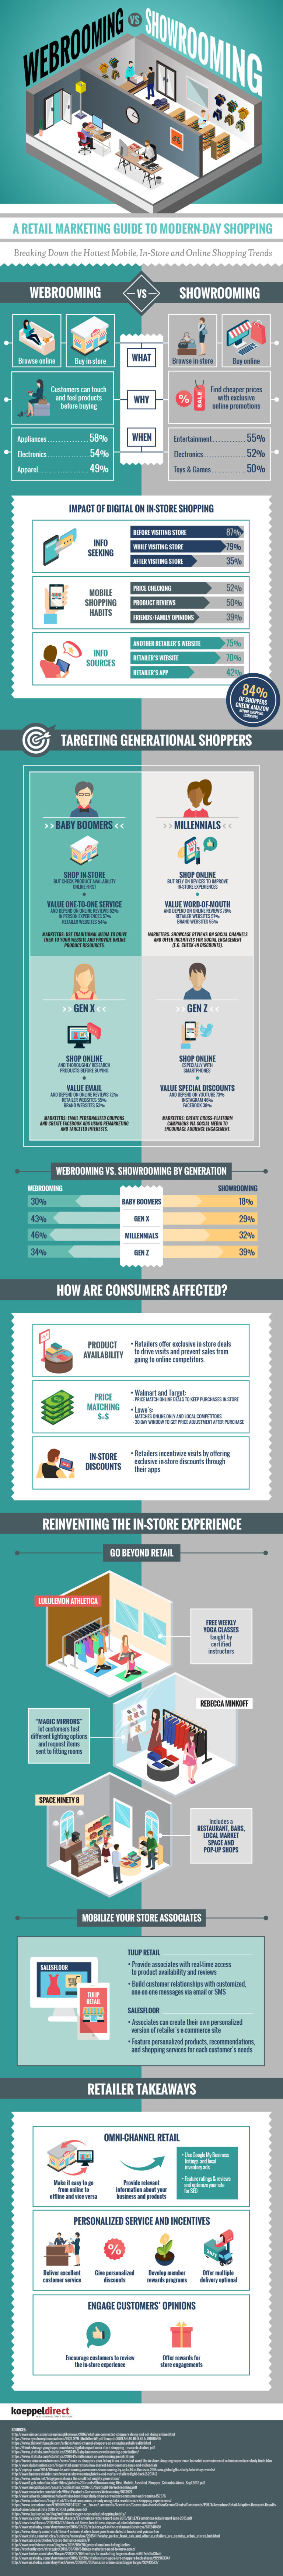 Infographic showing Webrooming and Showrooming